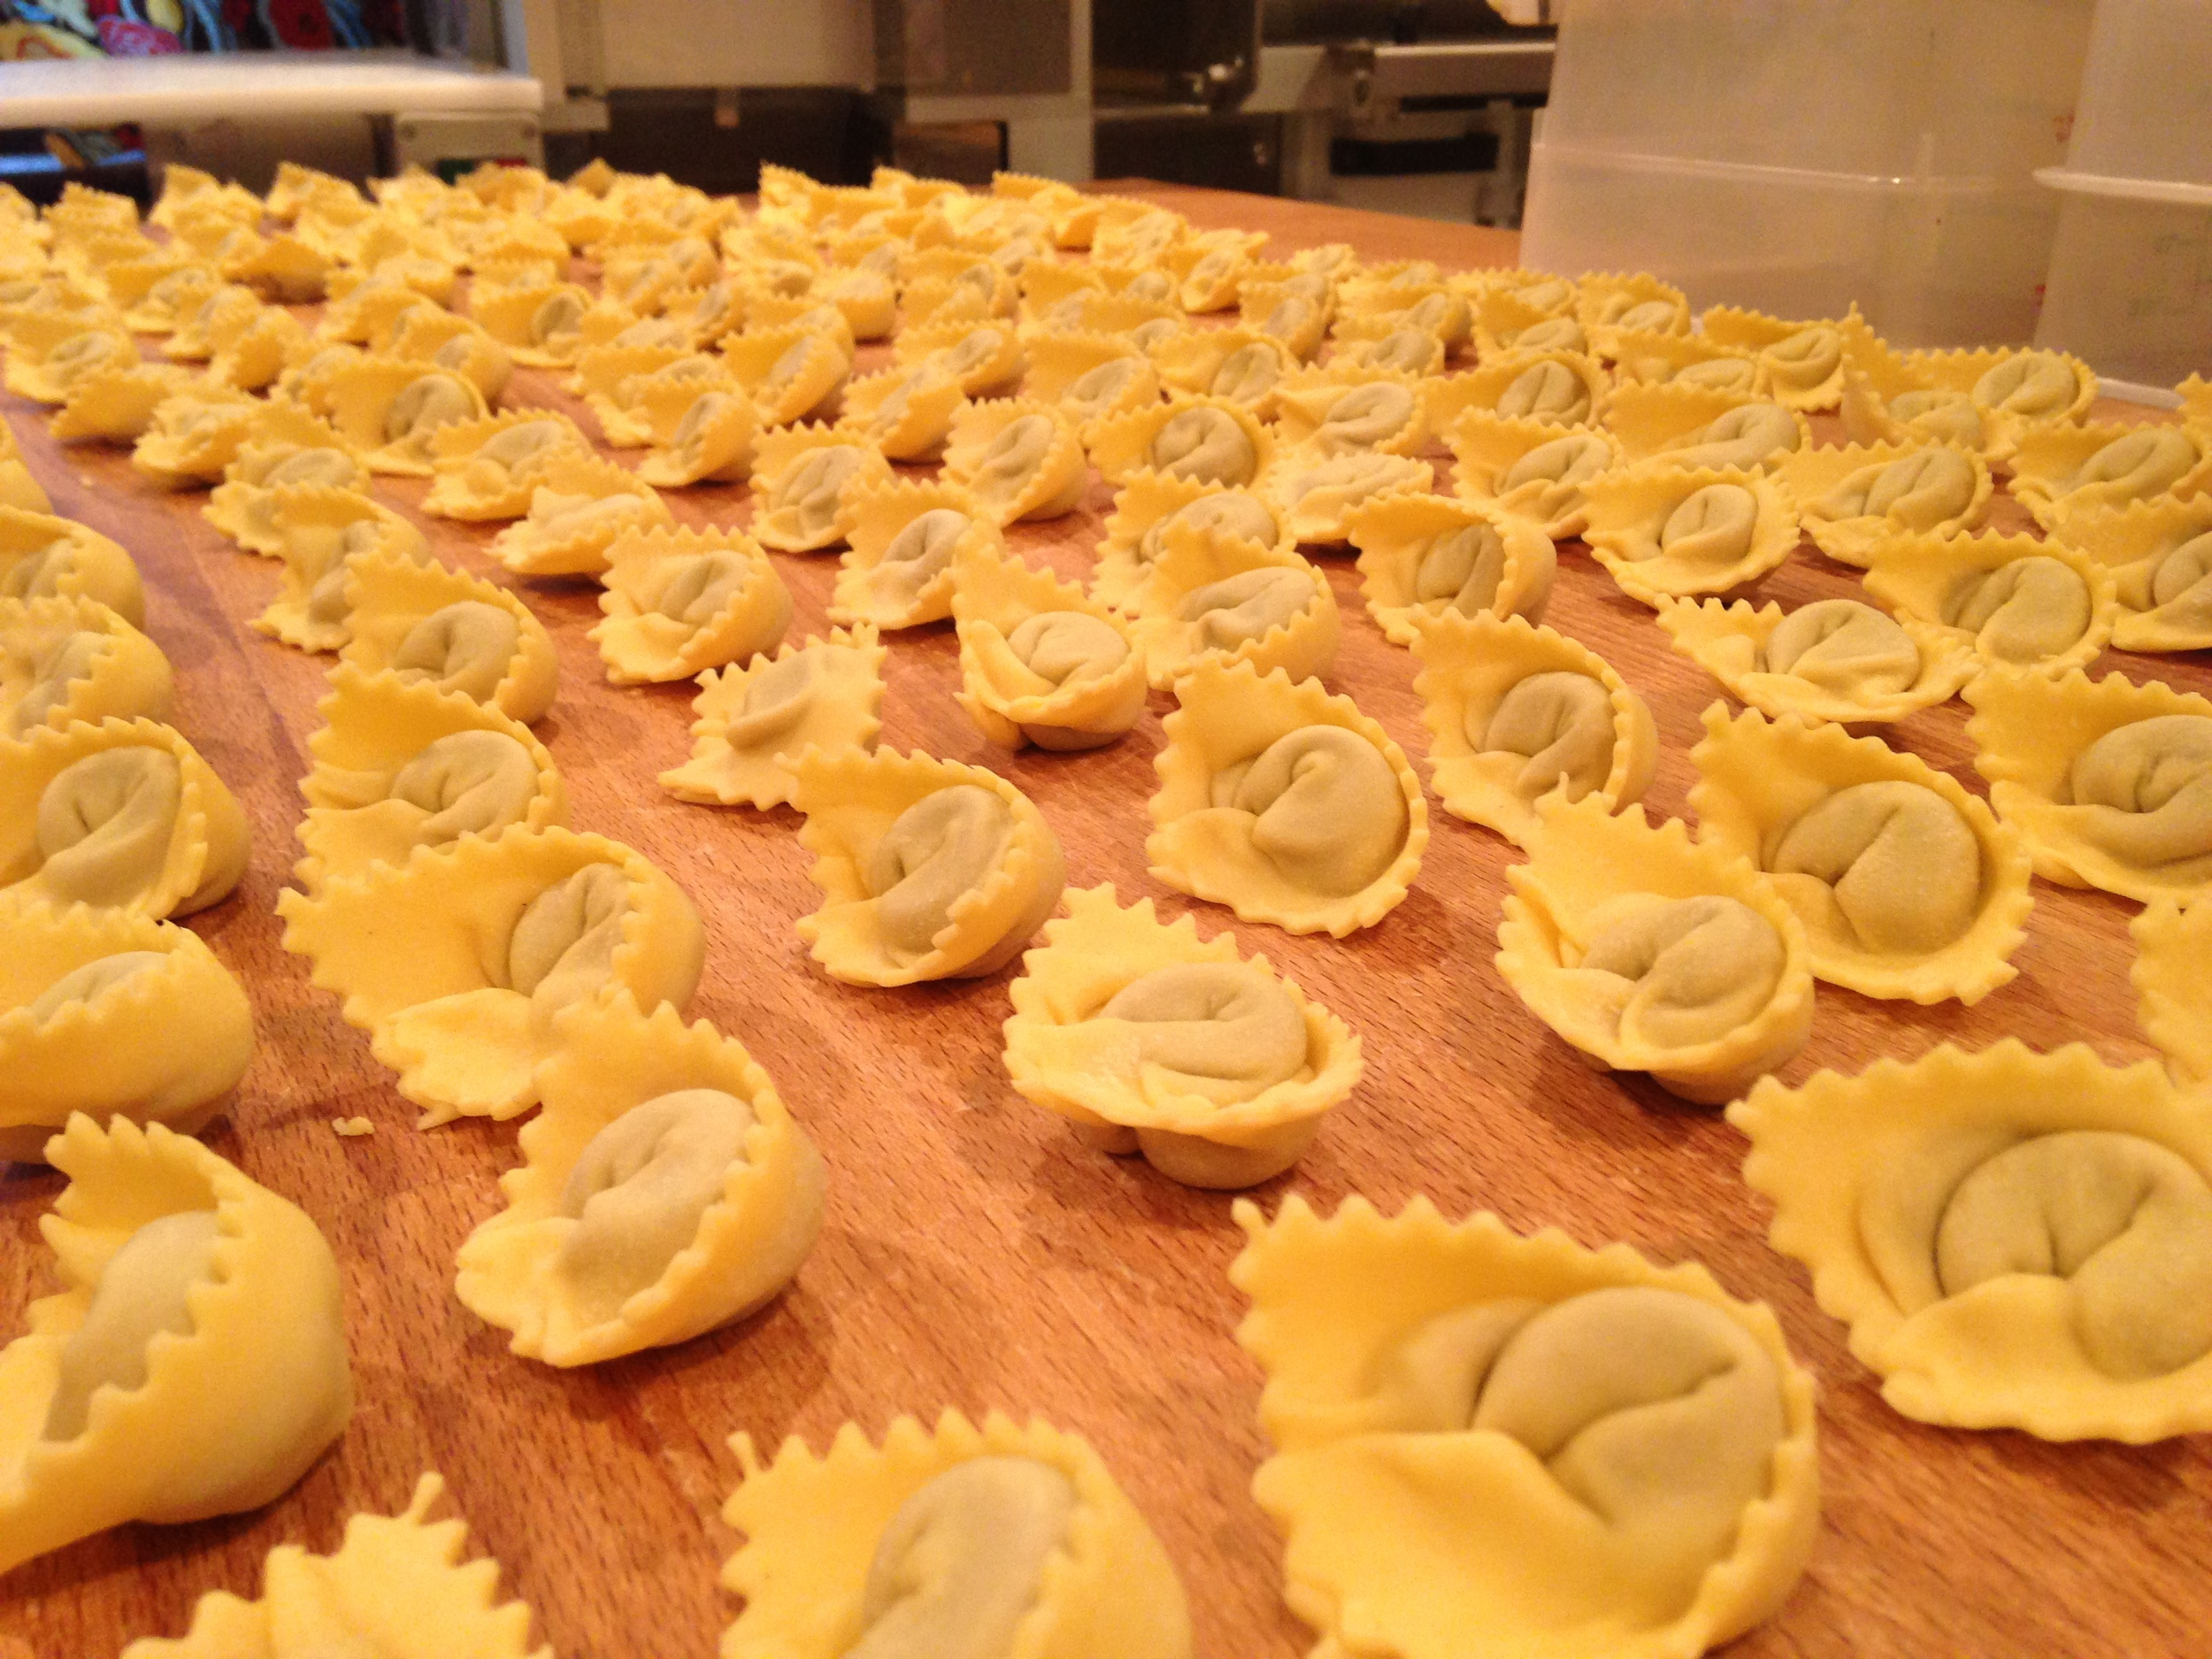 Beef-porcini cappelletti from Pasteria Lucchese. Photo courtesy Pasteria Lucchese.